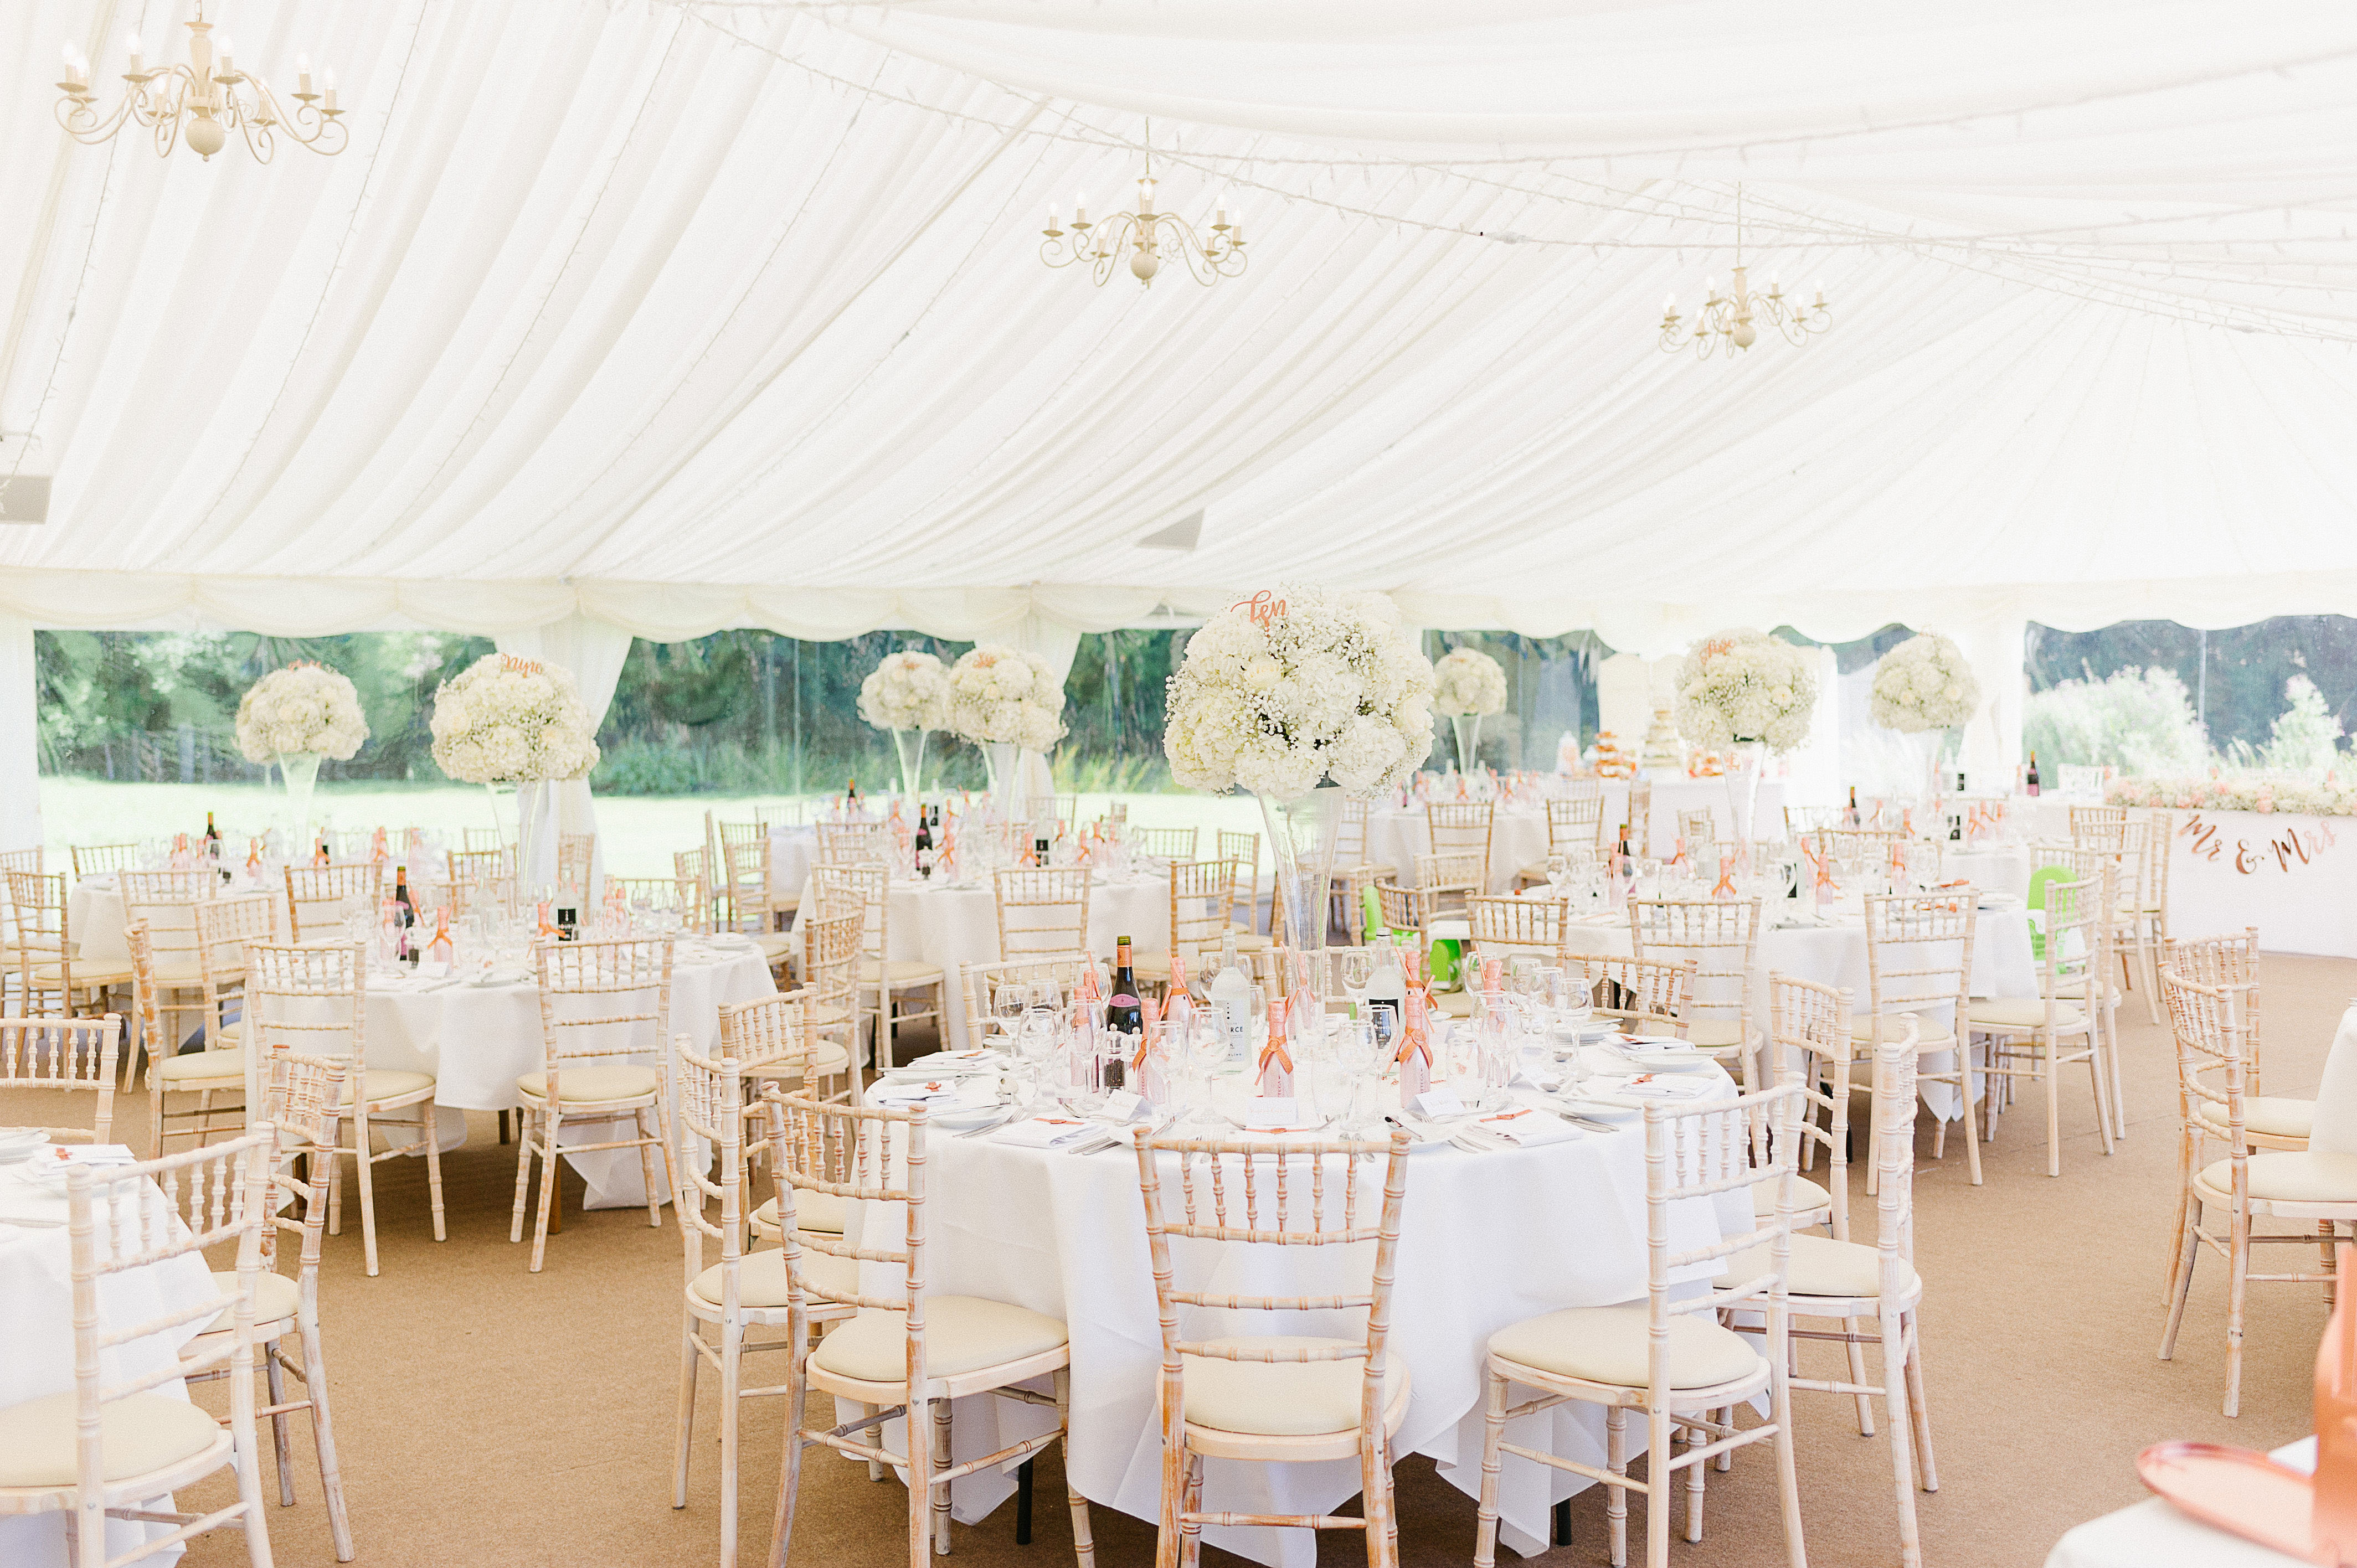 Ardington-house-wedding-ilaria-petrucci-photography-sophie-and-david-676